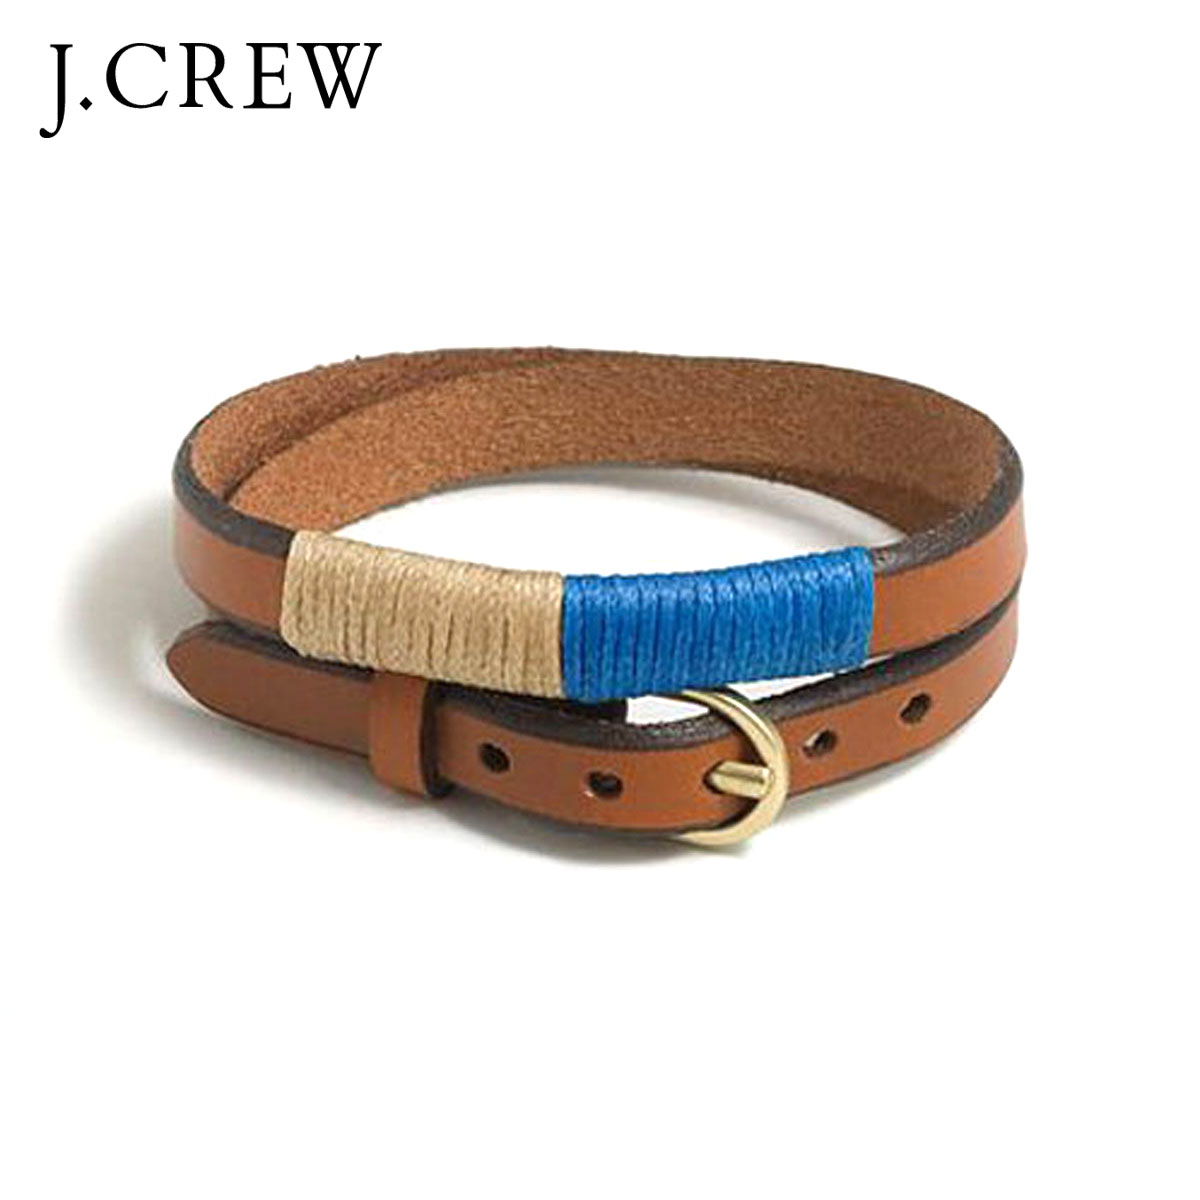 J.crew J.CREW genuine mens bracelet BELT-BUCKLE BRACELET P06Dec14